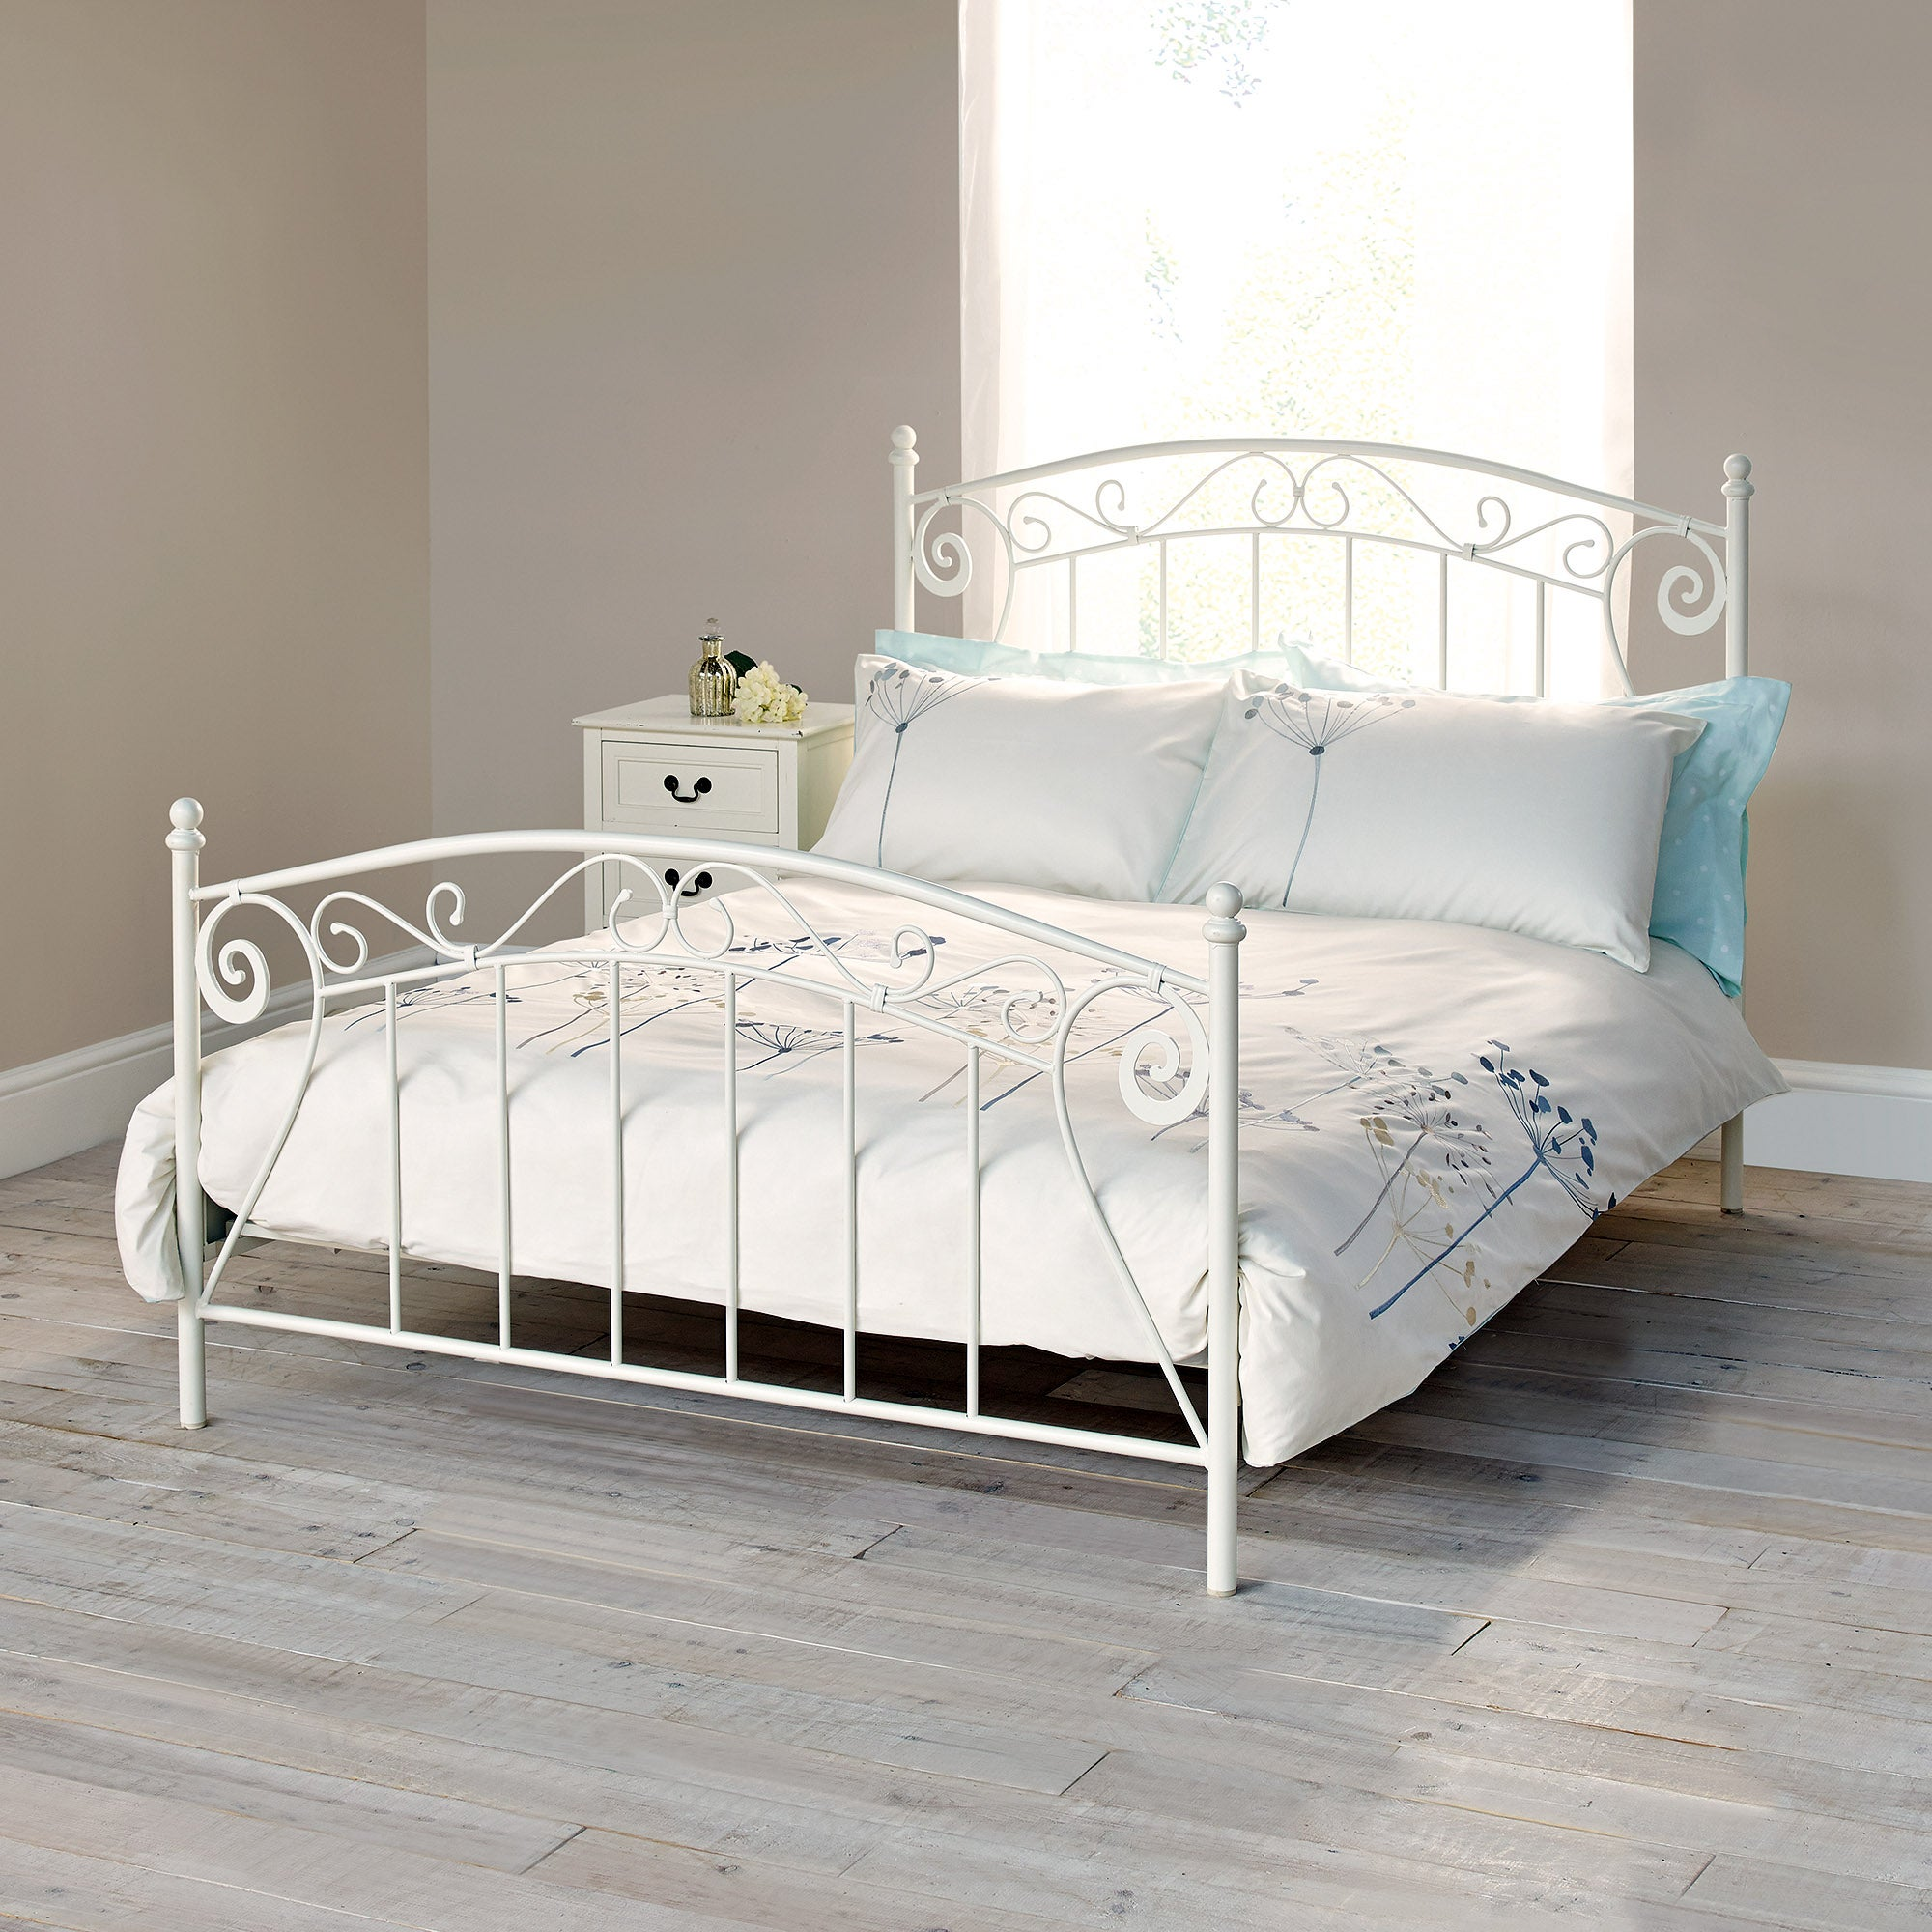 Tiffany Double Bedstead